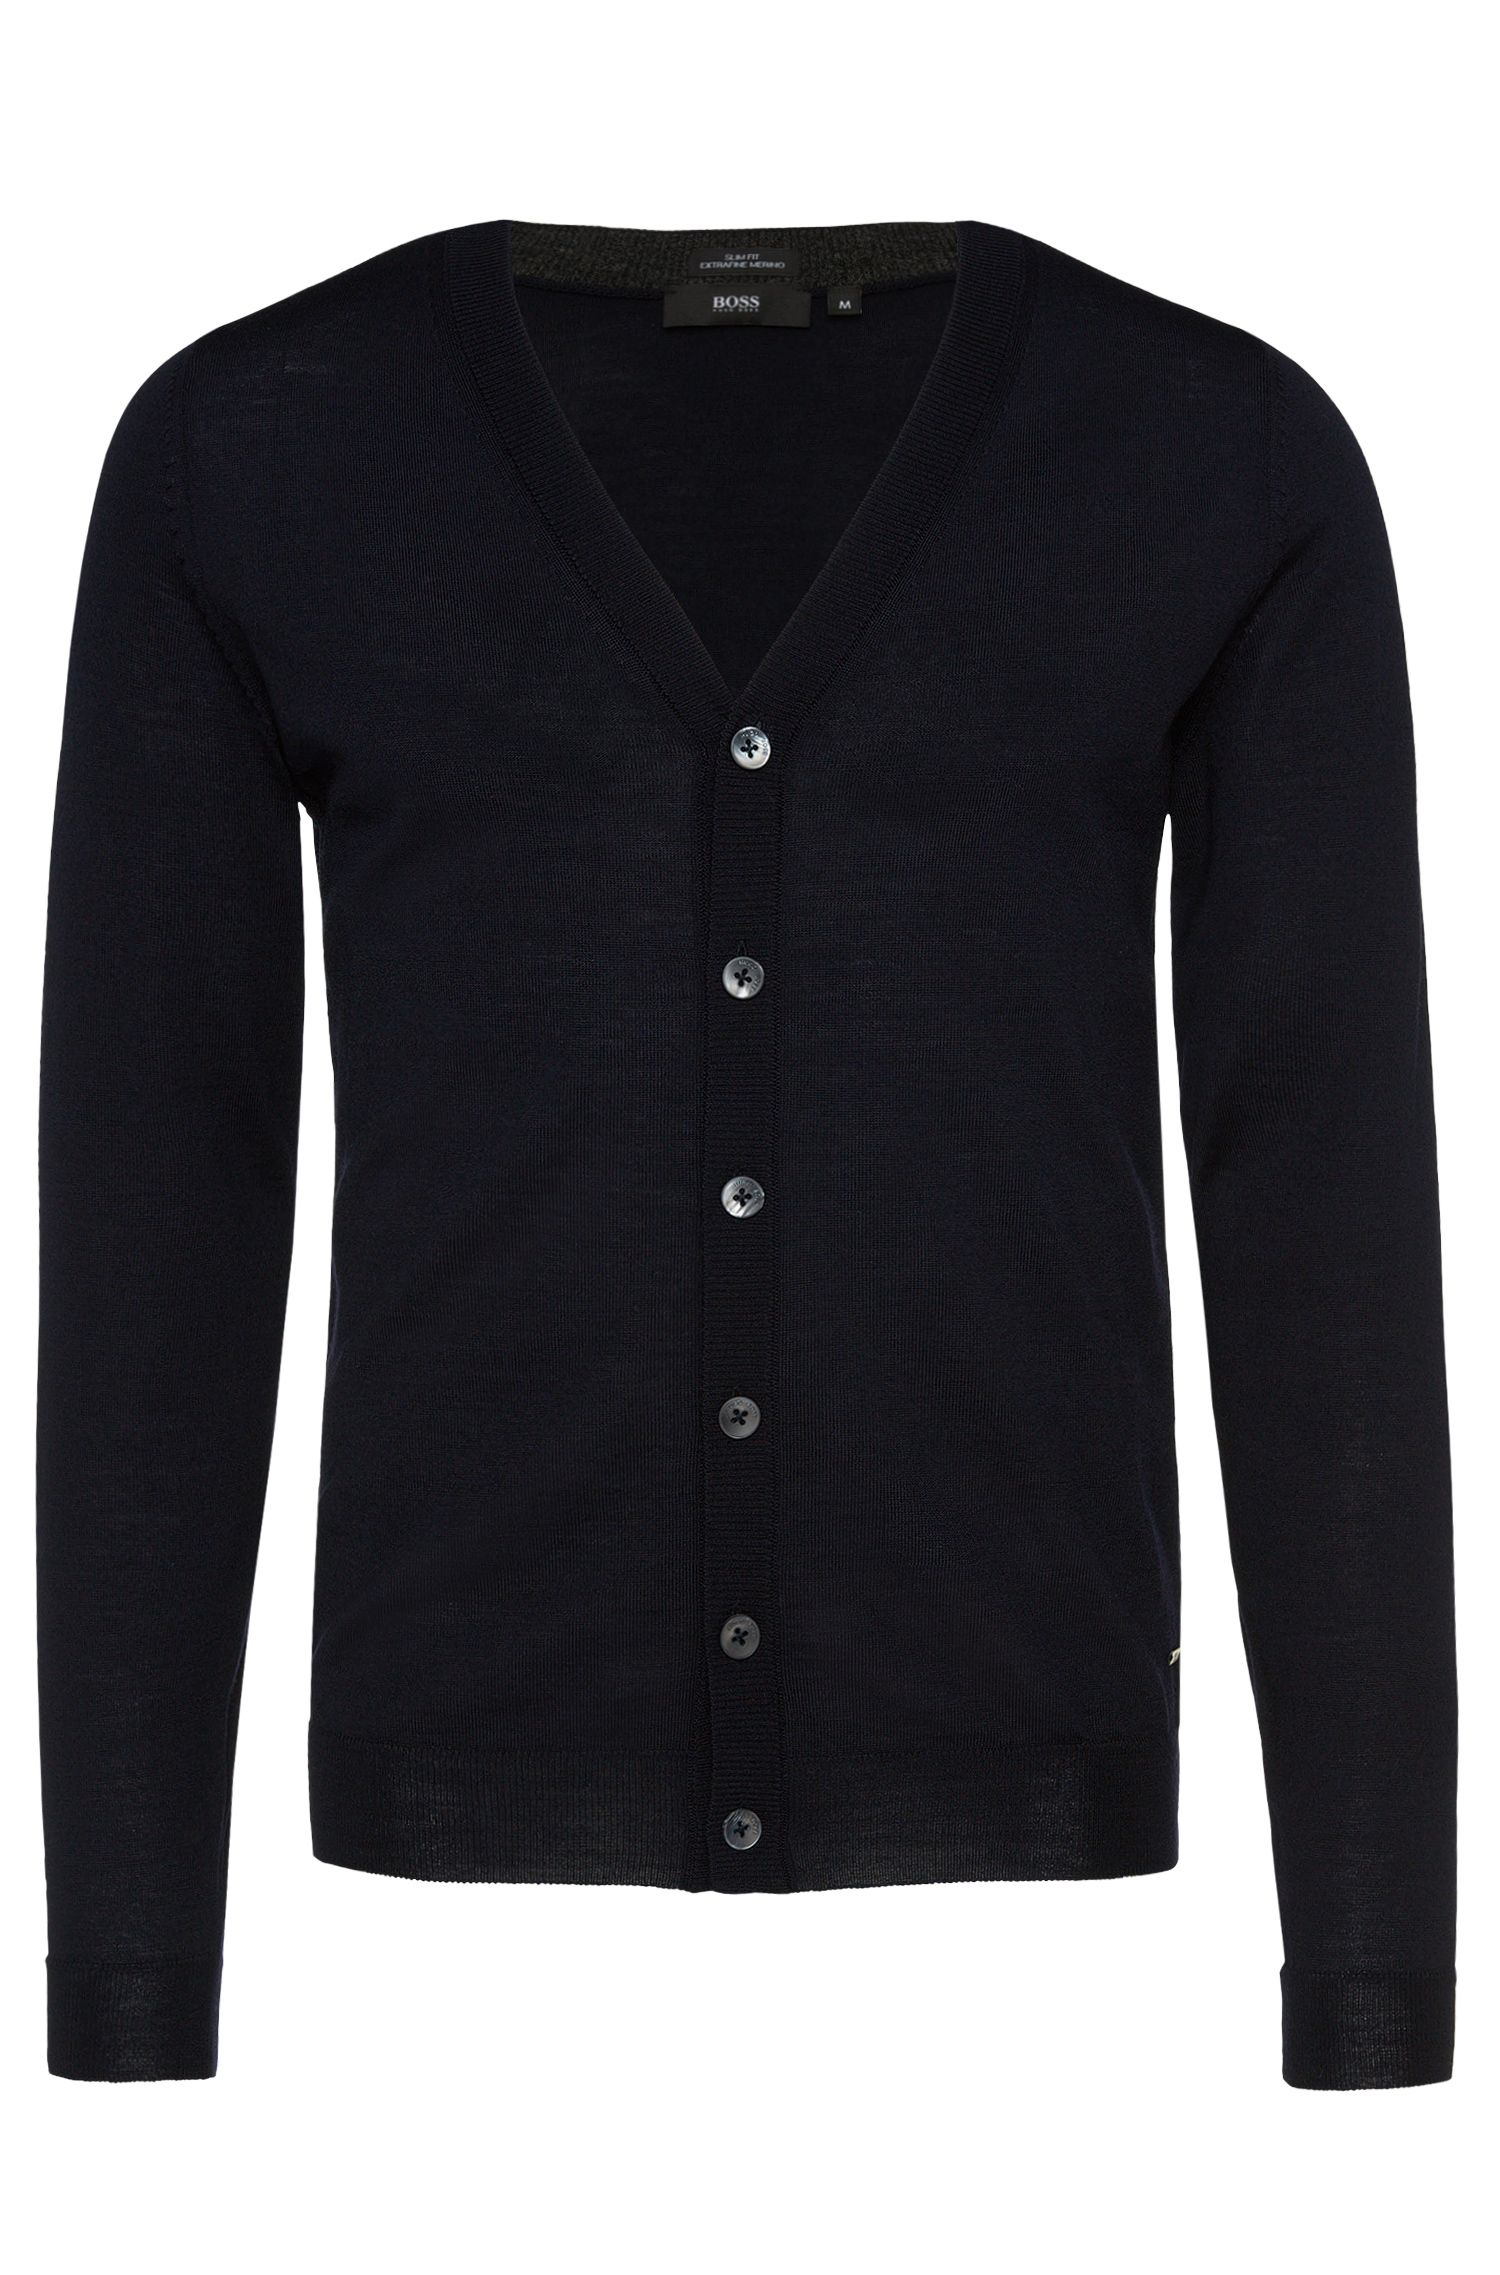 'Mardon B' | Virgin Wool V-Neck Cardigan